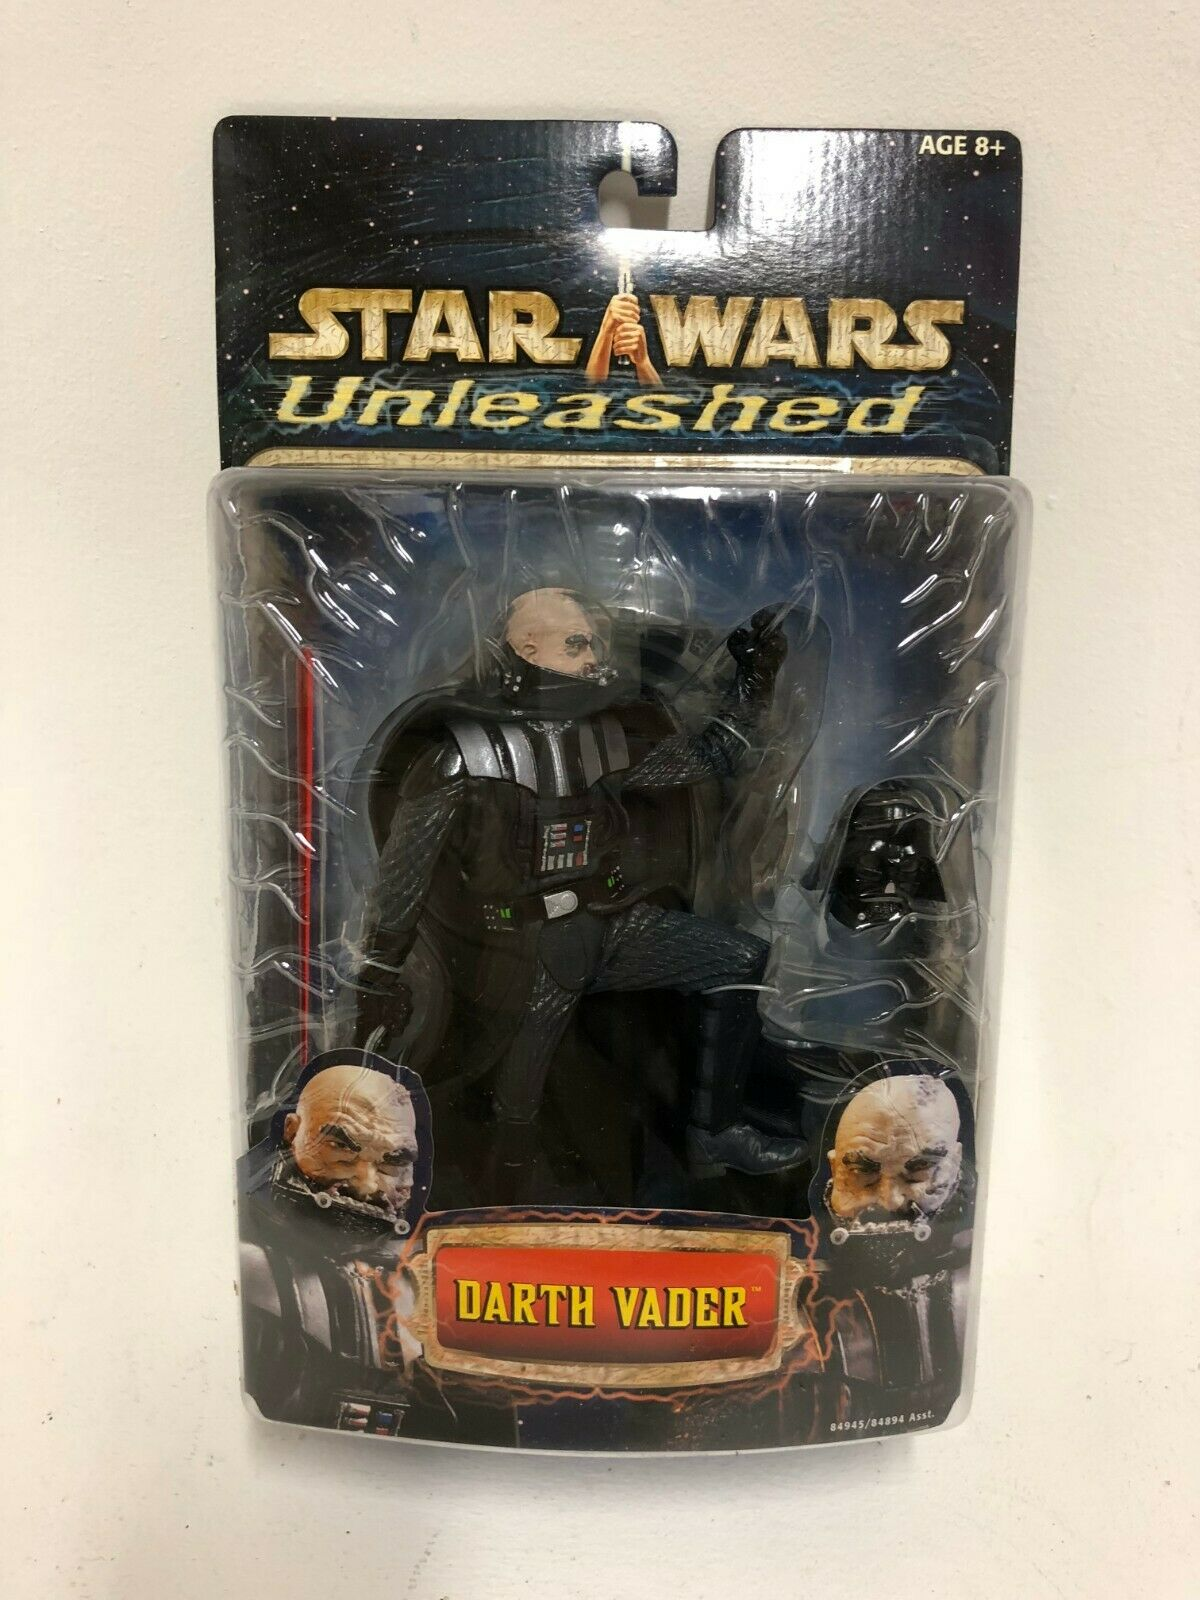 Darth Vader (Unmasked) Unleashed Extremely rare and collectable Star Wars figure